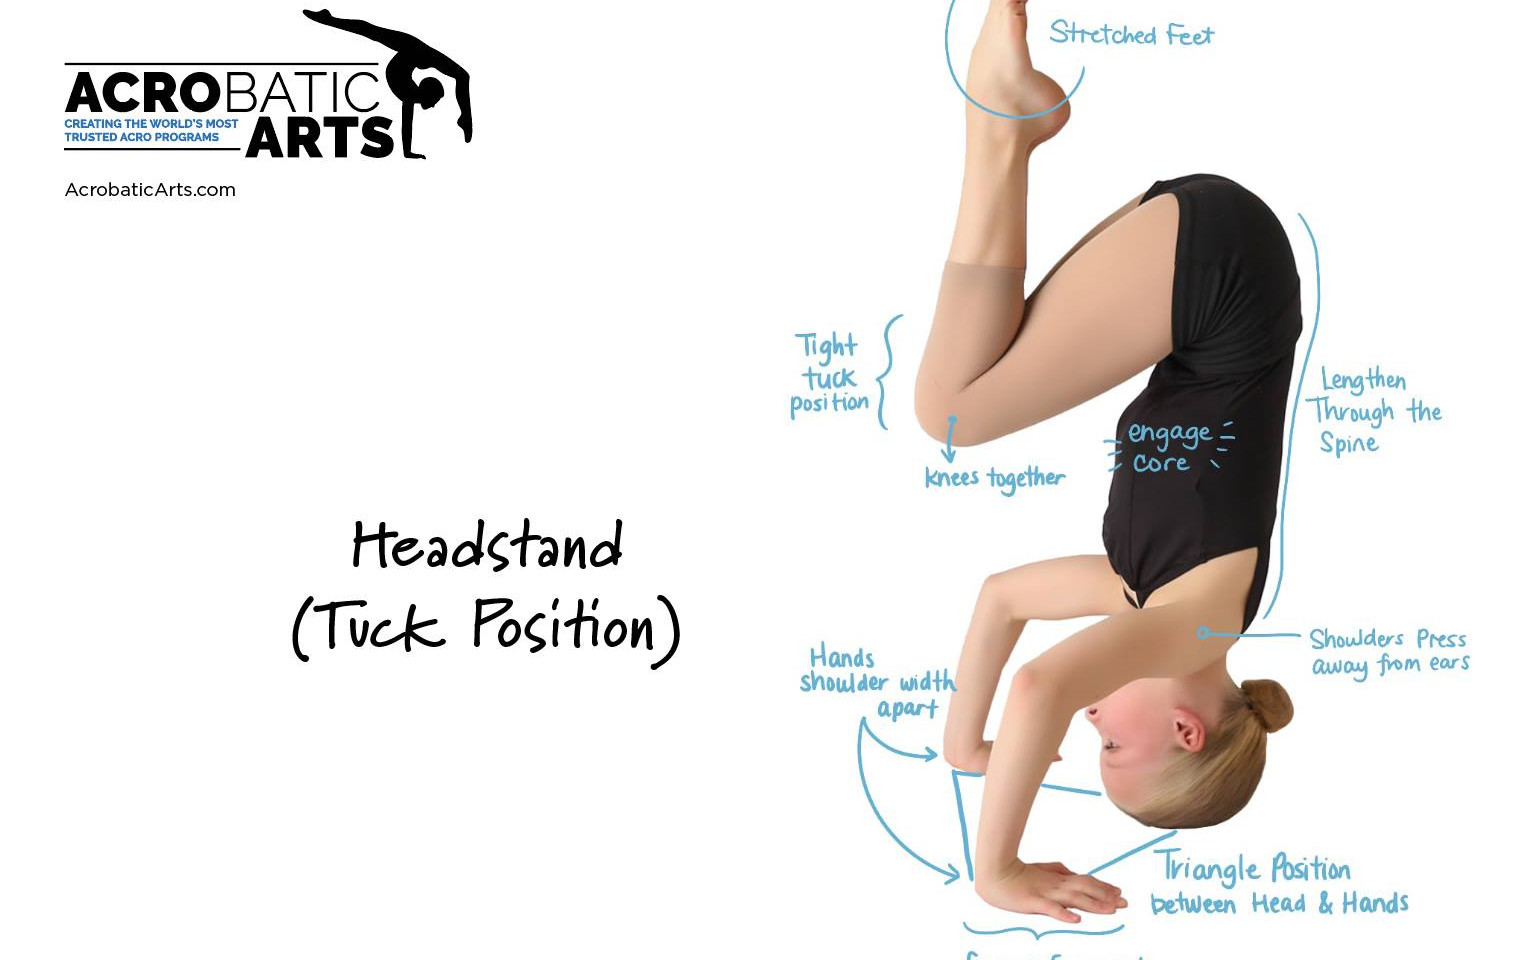 Headstand Tuck Position.jpg